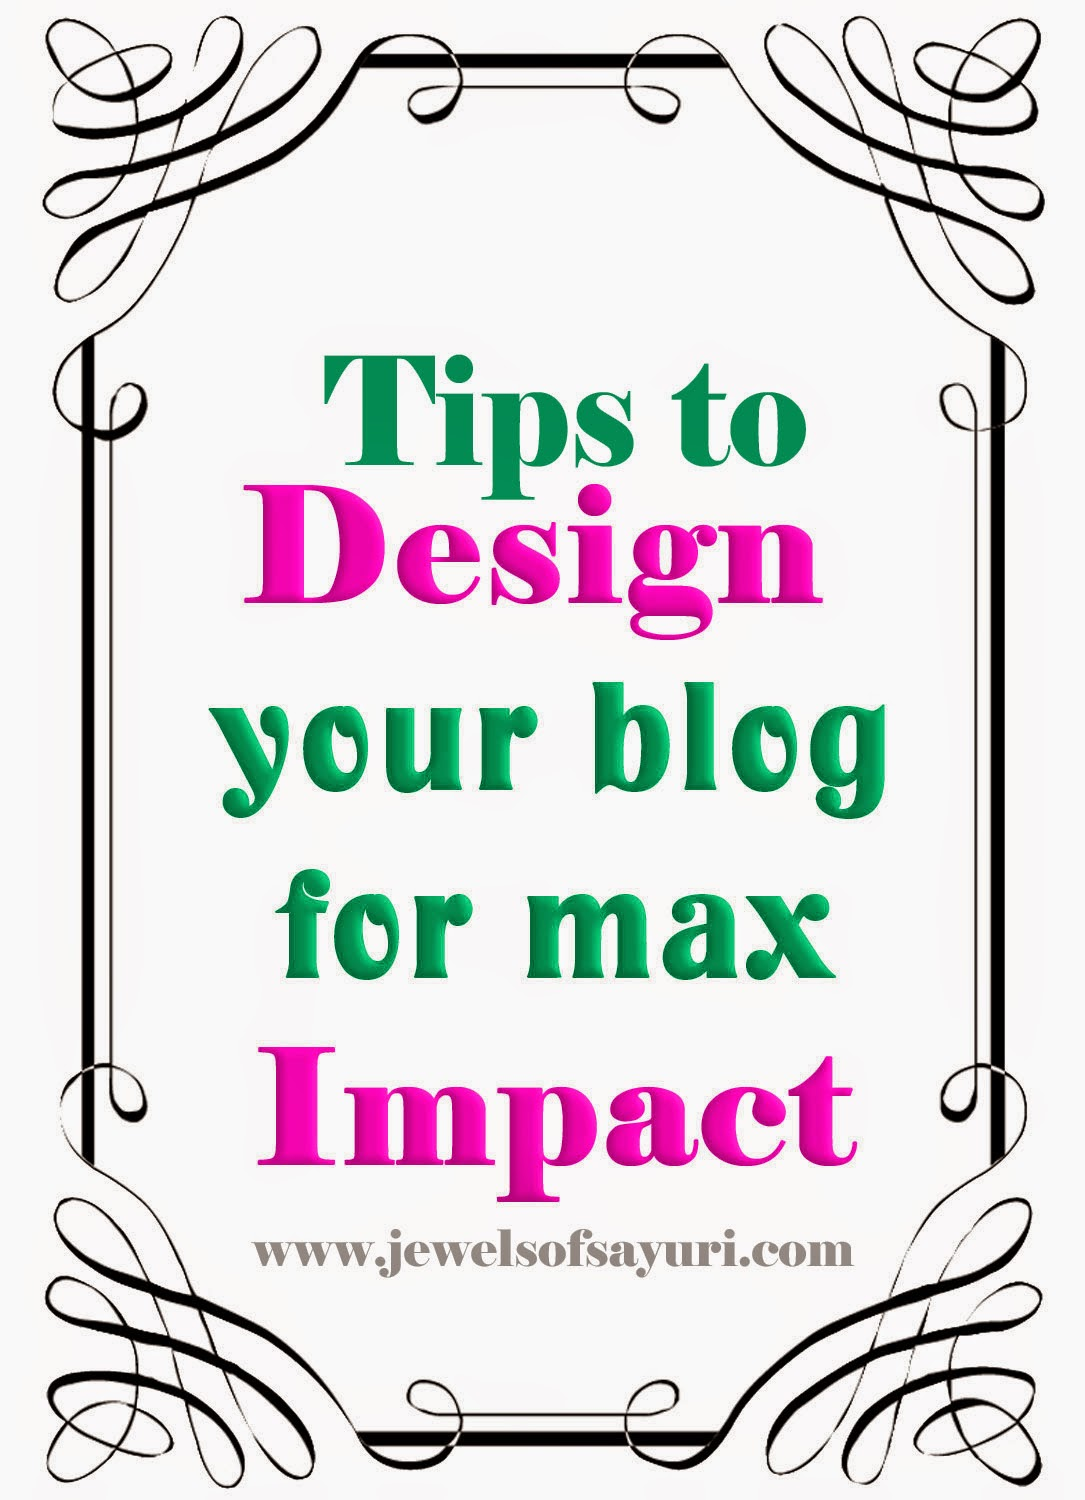 Tips on designing your blog